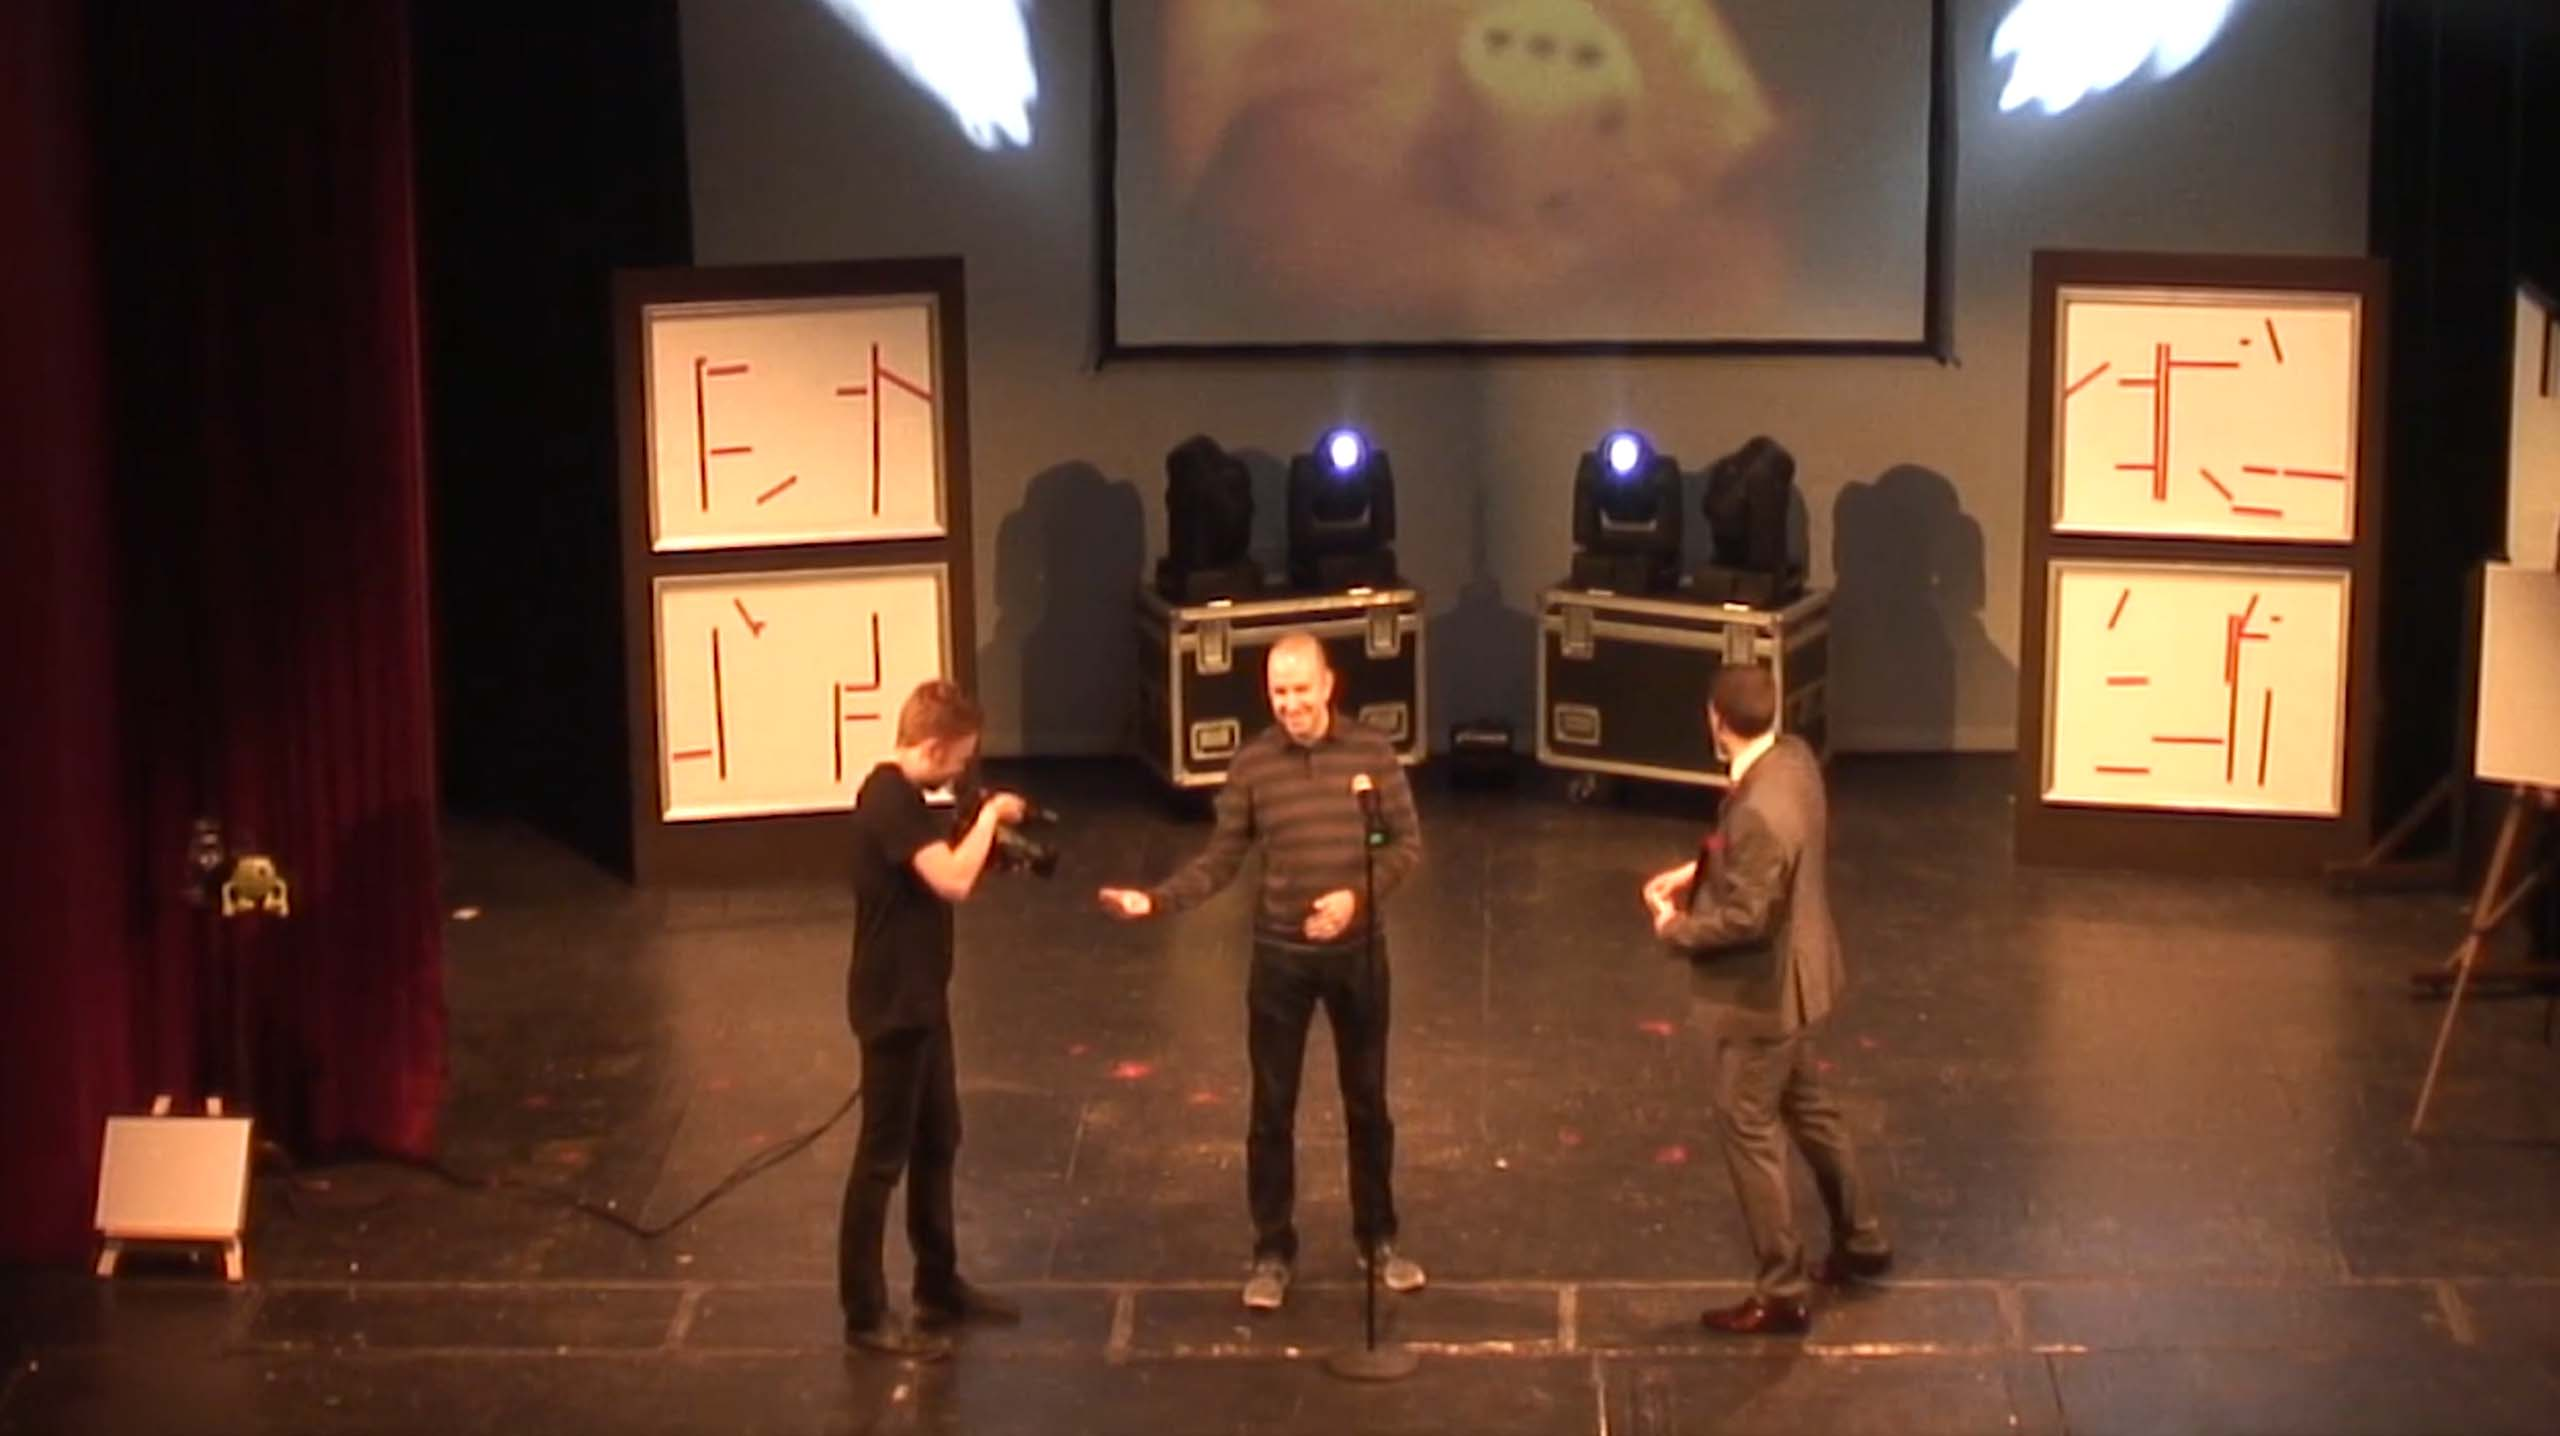 MIND GAMES theatre - Aaron guesses the number on the dice